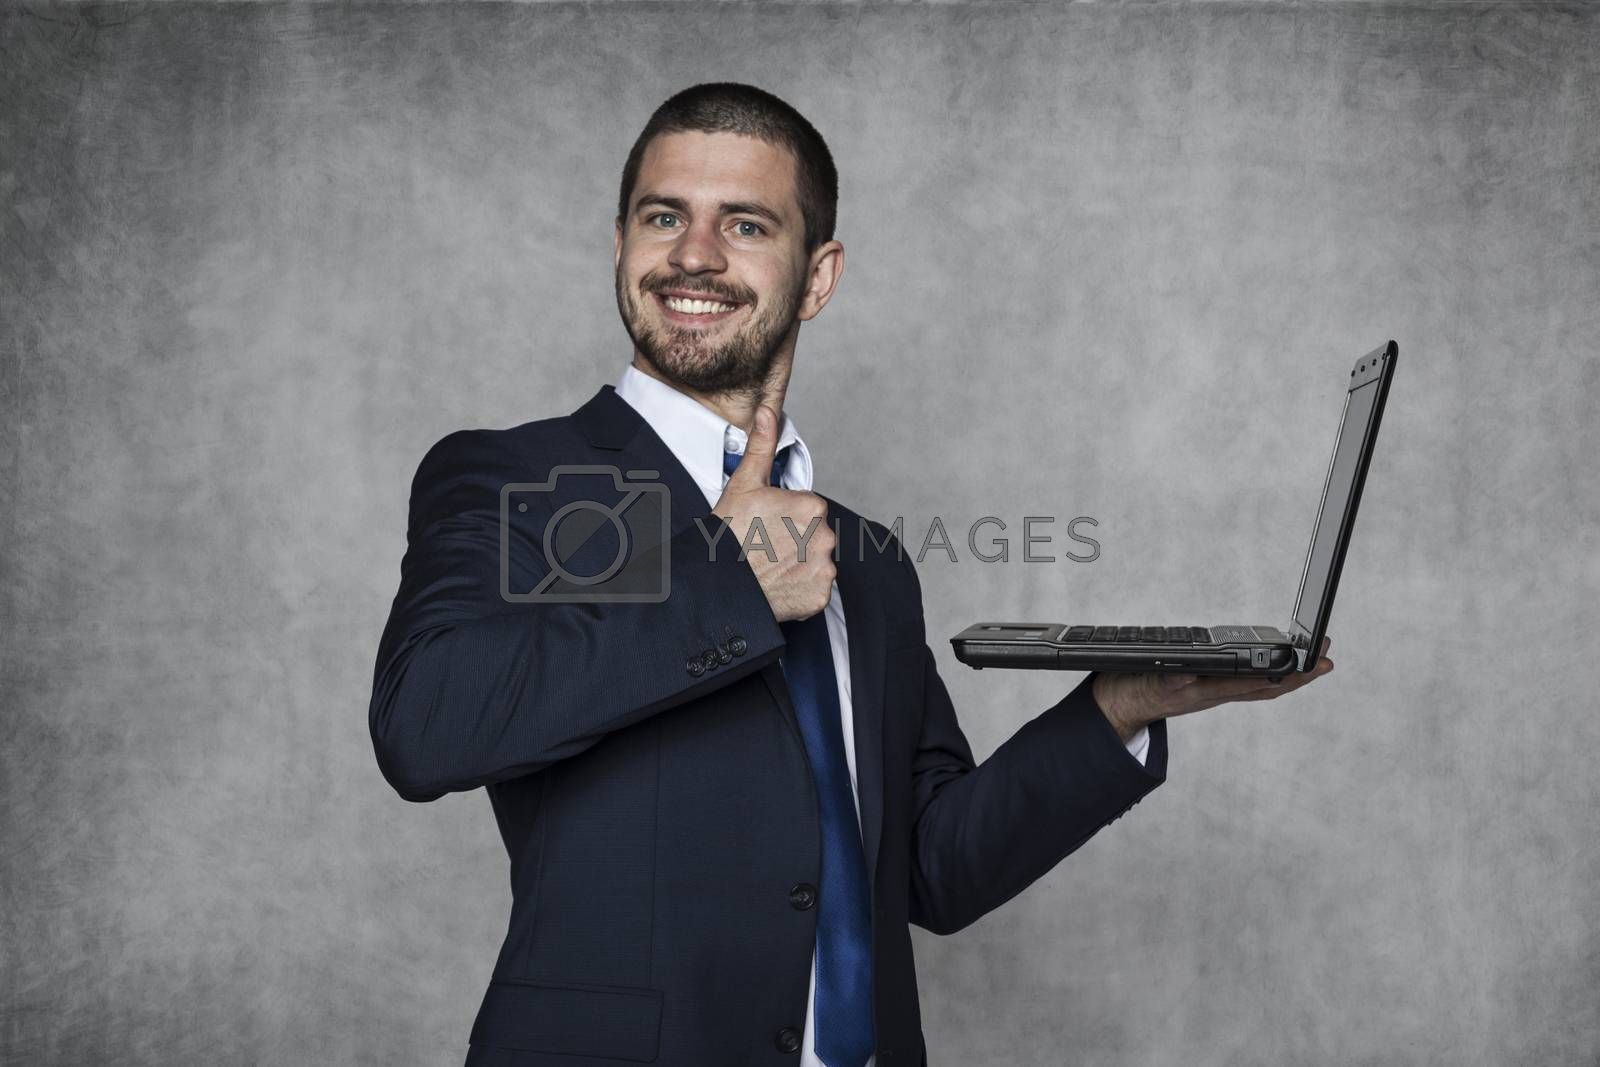 Laptops are the future